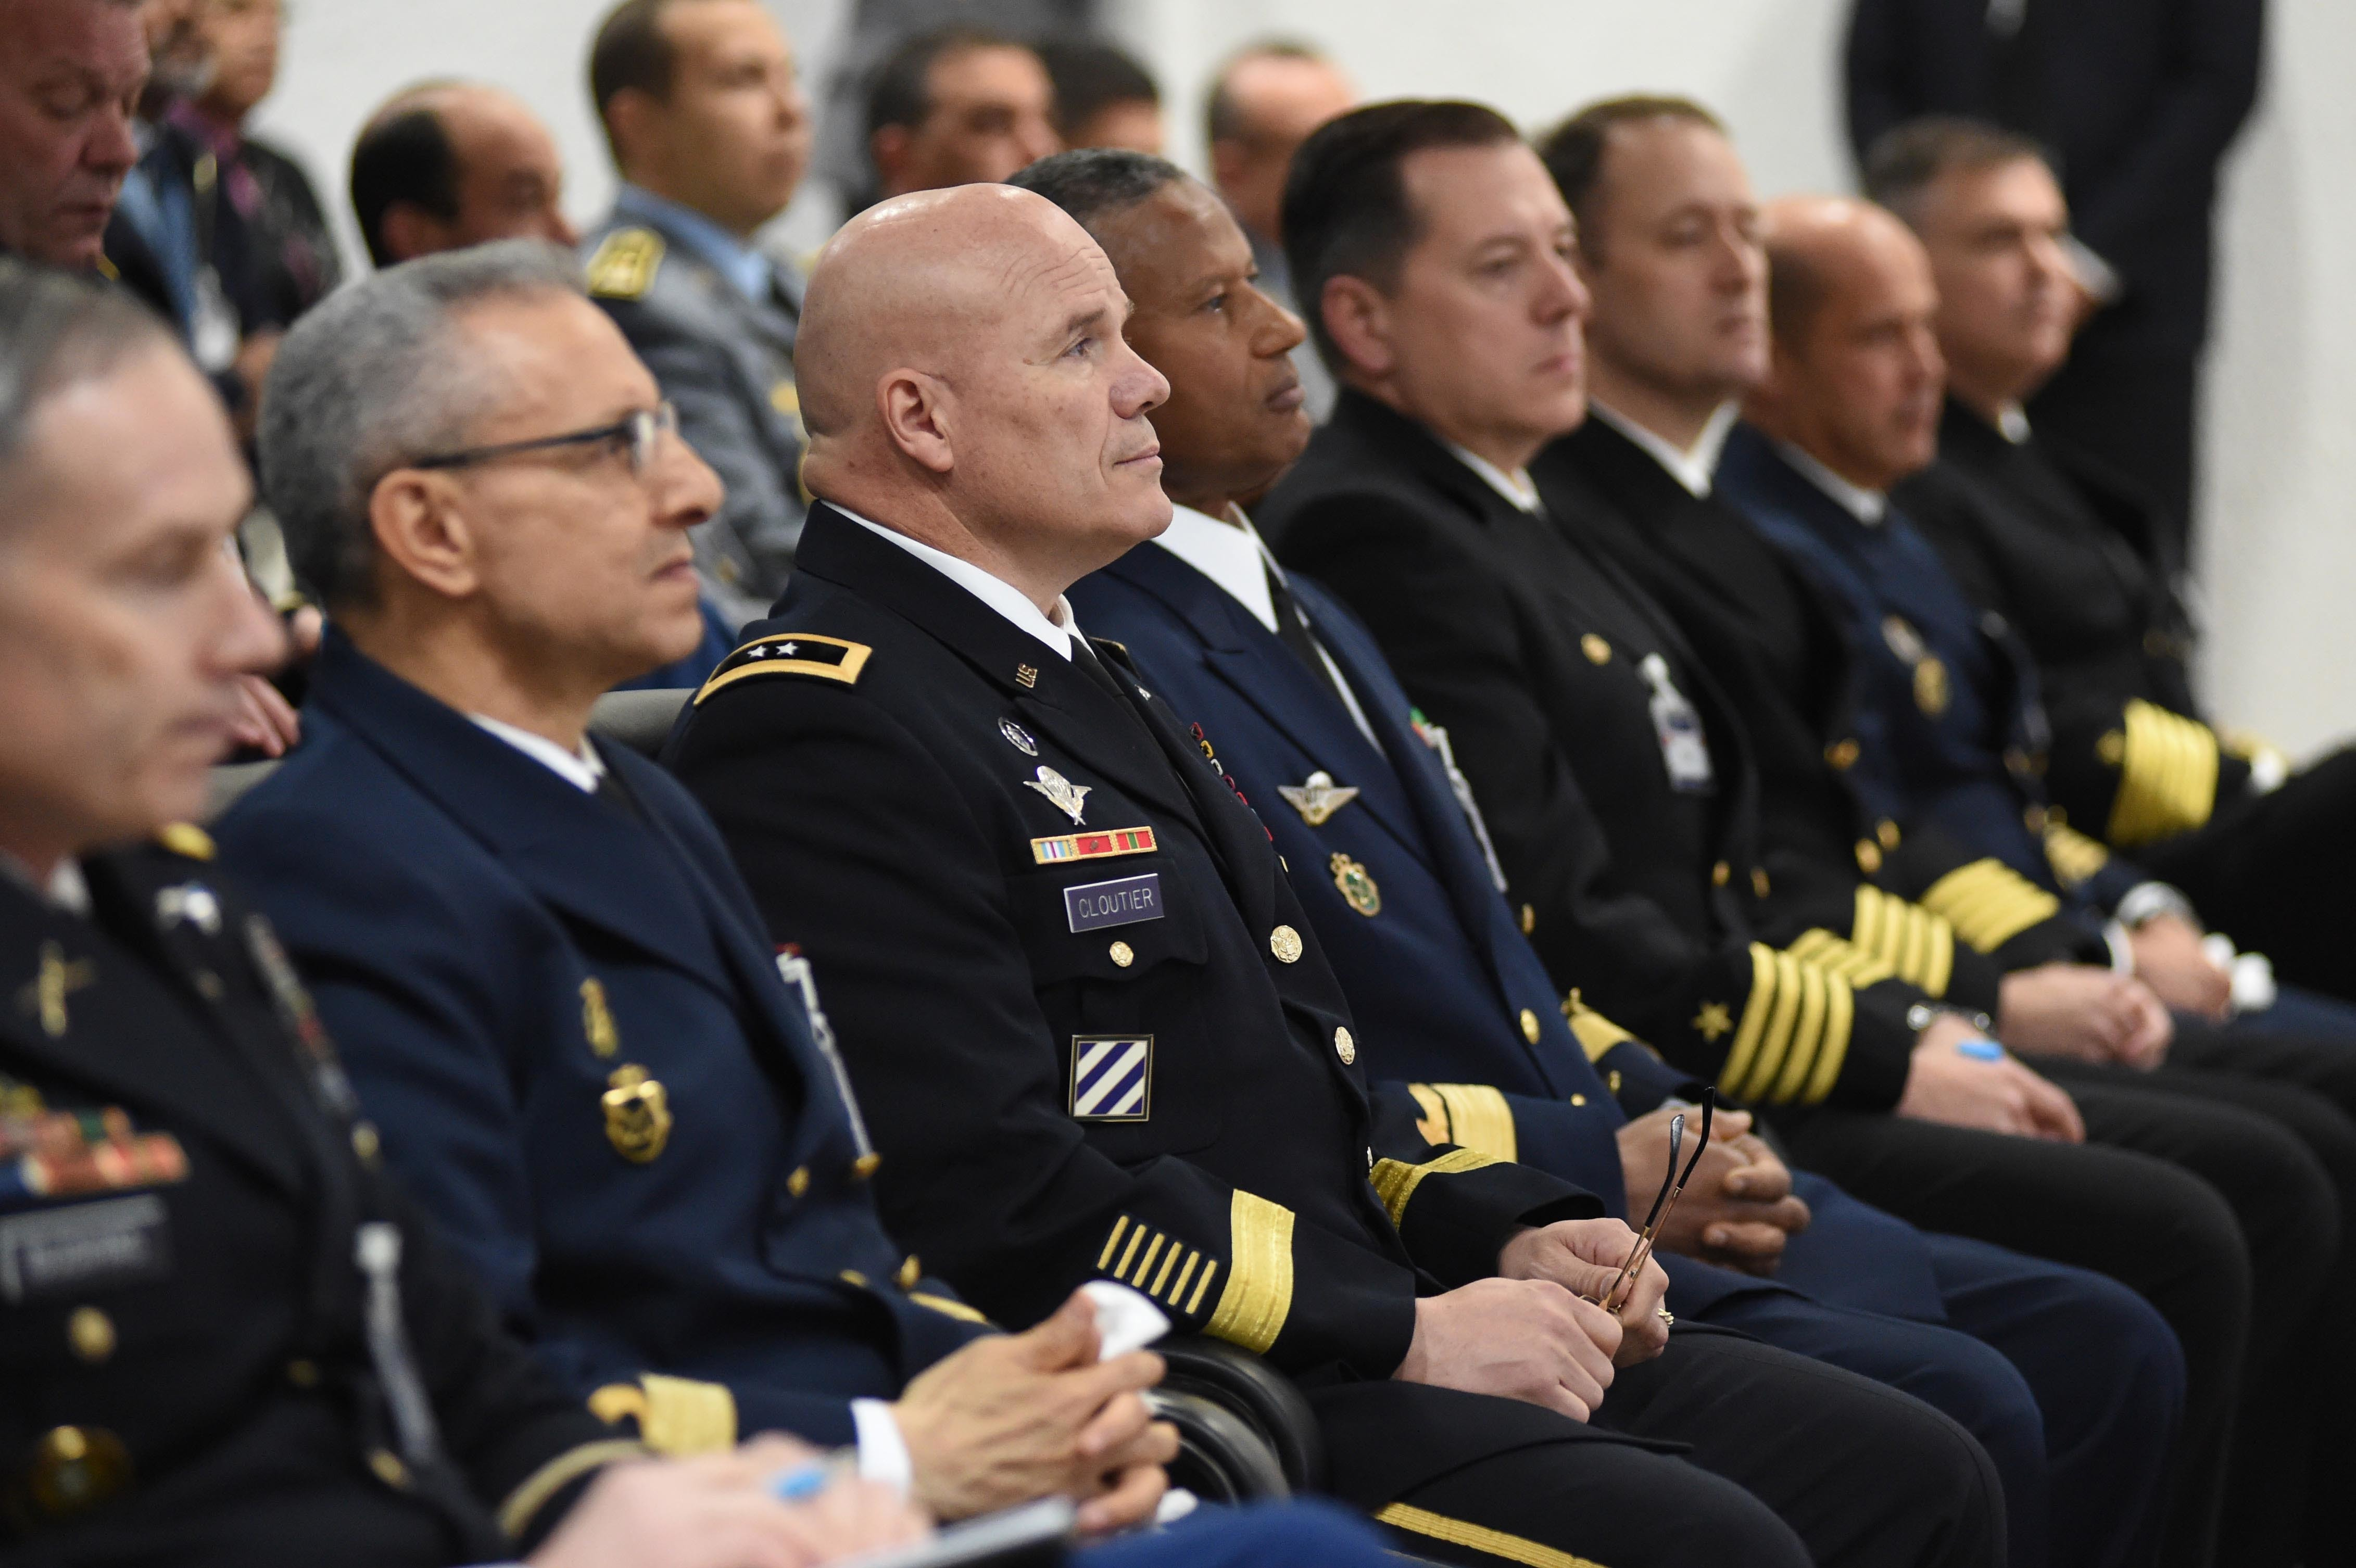 CASABLANCA, MOROCCO (March 29, 2019) U.S. Army Maj. Gen. Roger L. Cloutier Jr., U.S. Army Africa commanding general, third from the left, listens to remarks during the opening ceremony for exercise Phoenix Express 2019. Sponsored by U.S. Africa Command (AFRICOM) and facilitated by U.S. Naval Forces Europe-Africa, Phoenix Express is designed to improve regional cooperation, increase maritime domain awareness information sharing practices, and operational capabilities to enhance efforts to achieve safety and security in the Mediterranean Sea. (U.S. Navy Photo by Chief Mass Communication Specialist Arif Patani/Released)